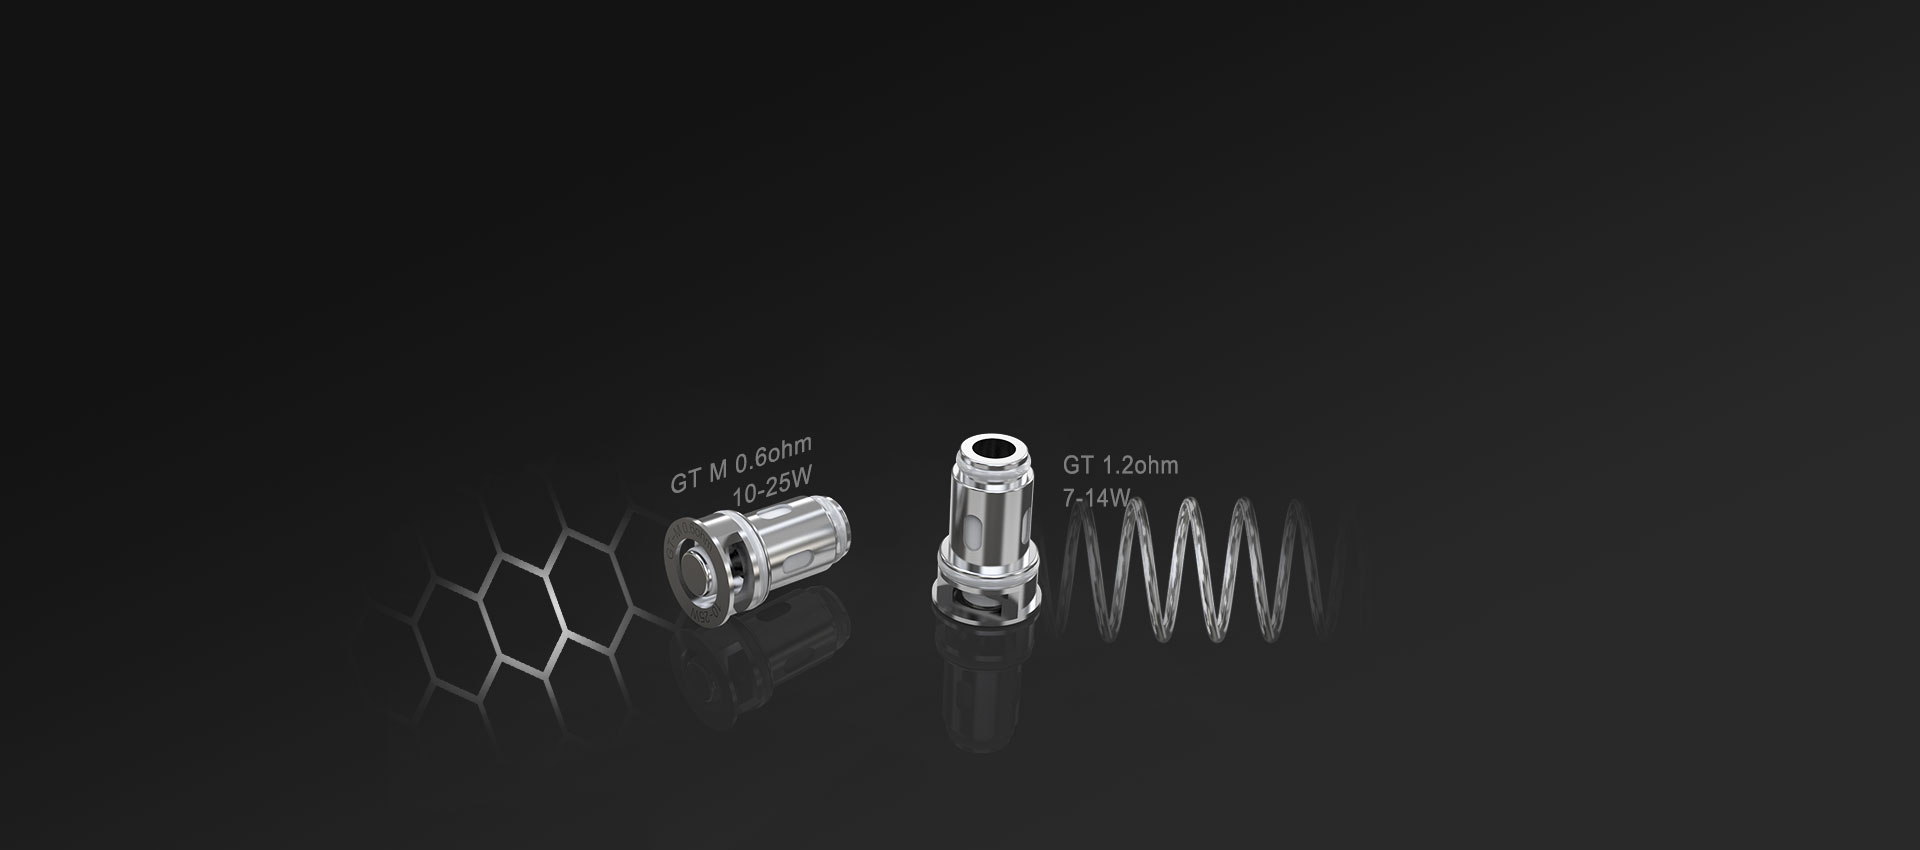 Eleaf iJust Mini Tank Clearomizer M179a-51